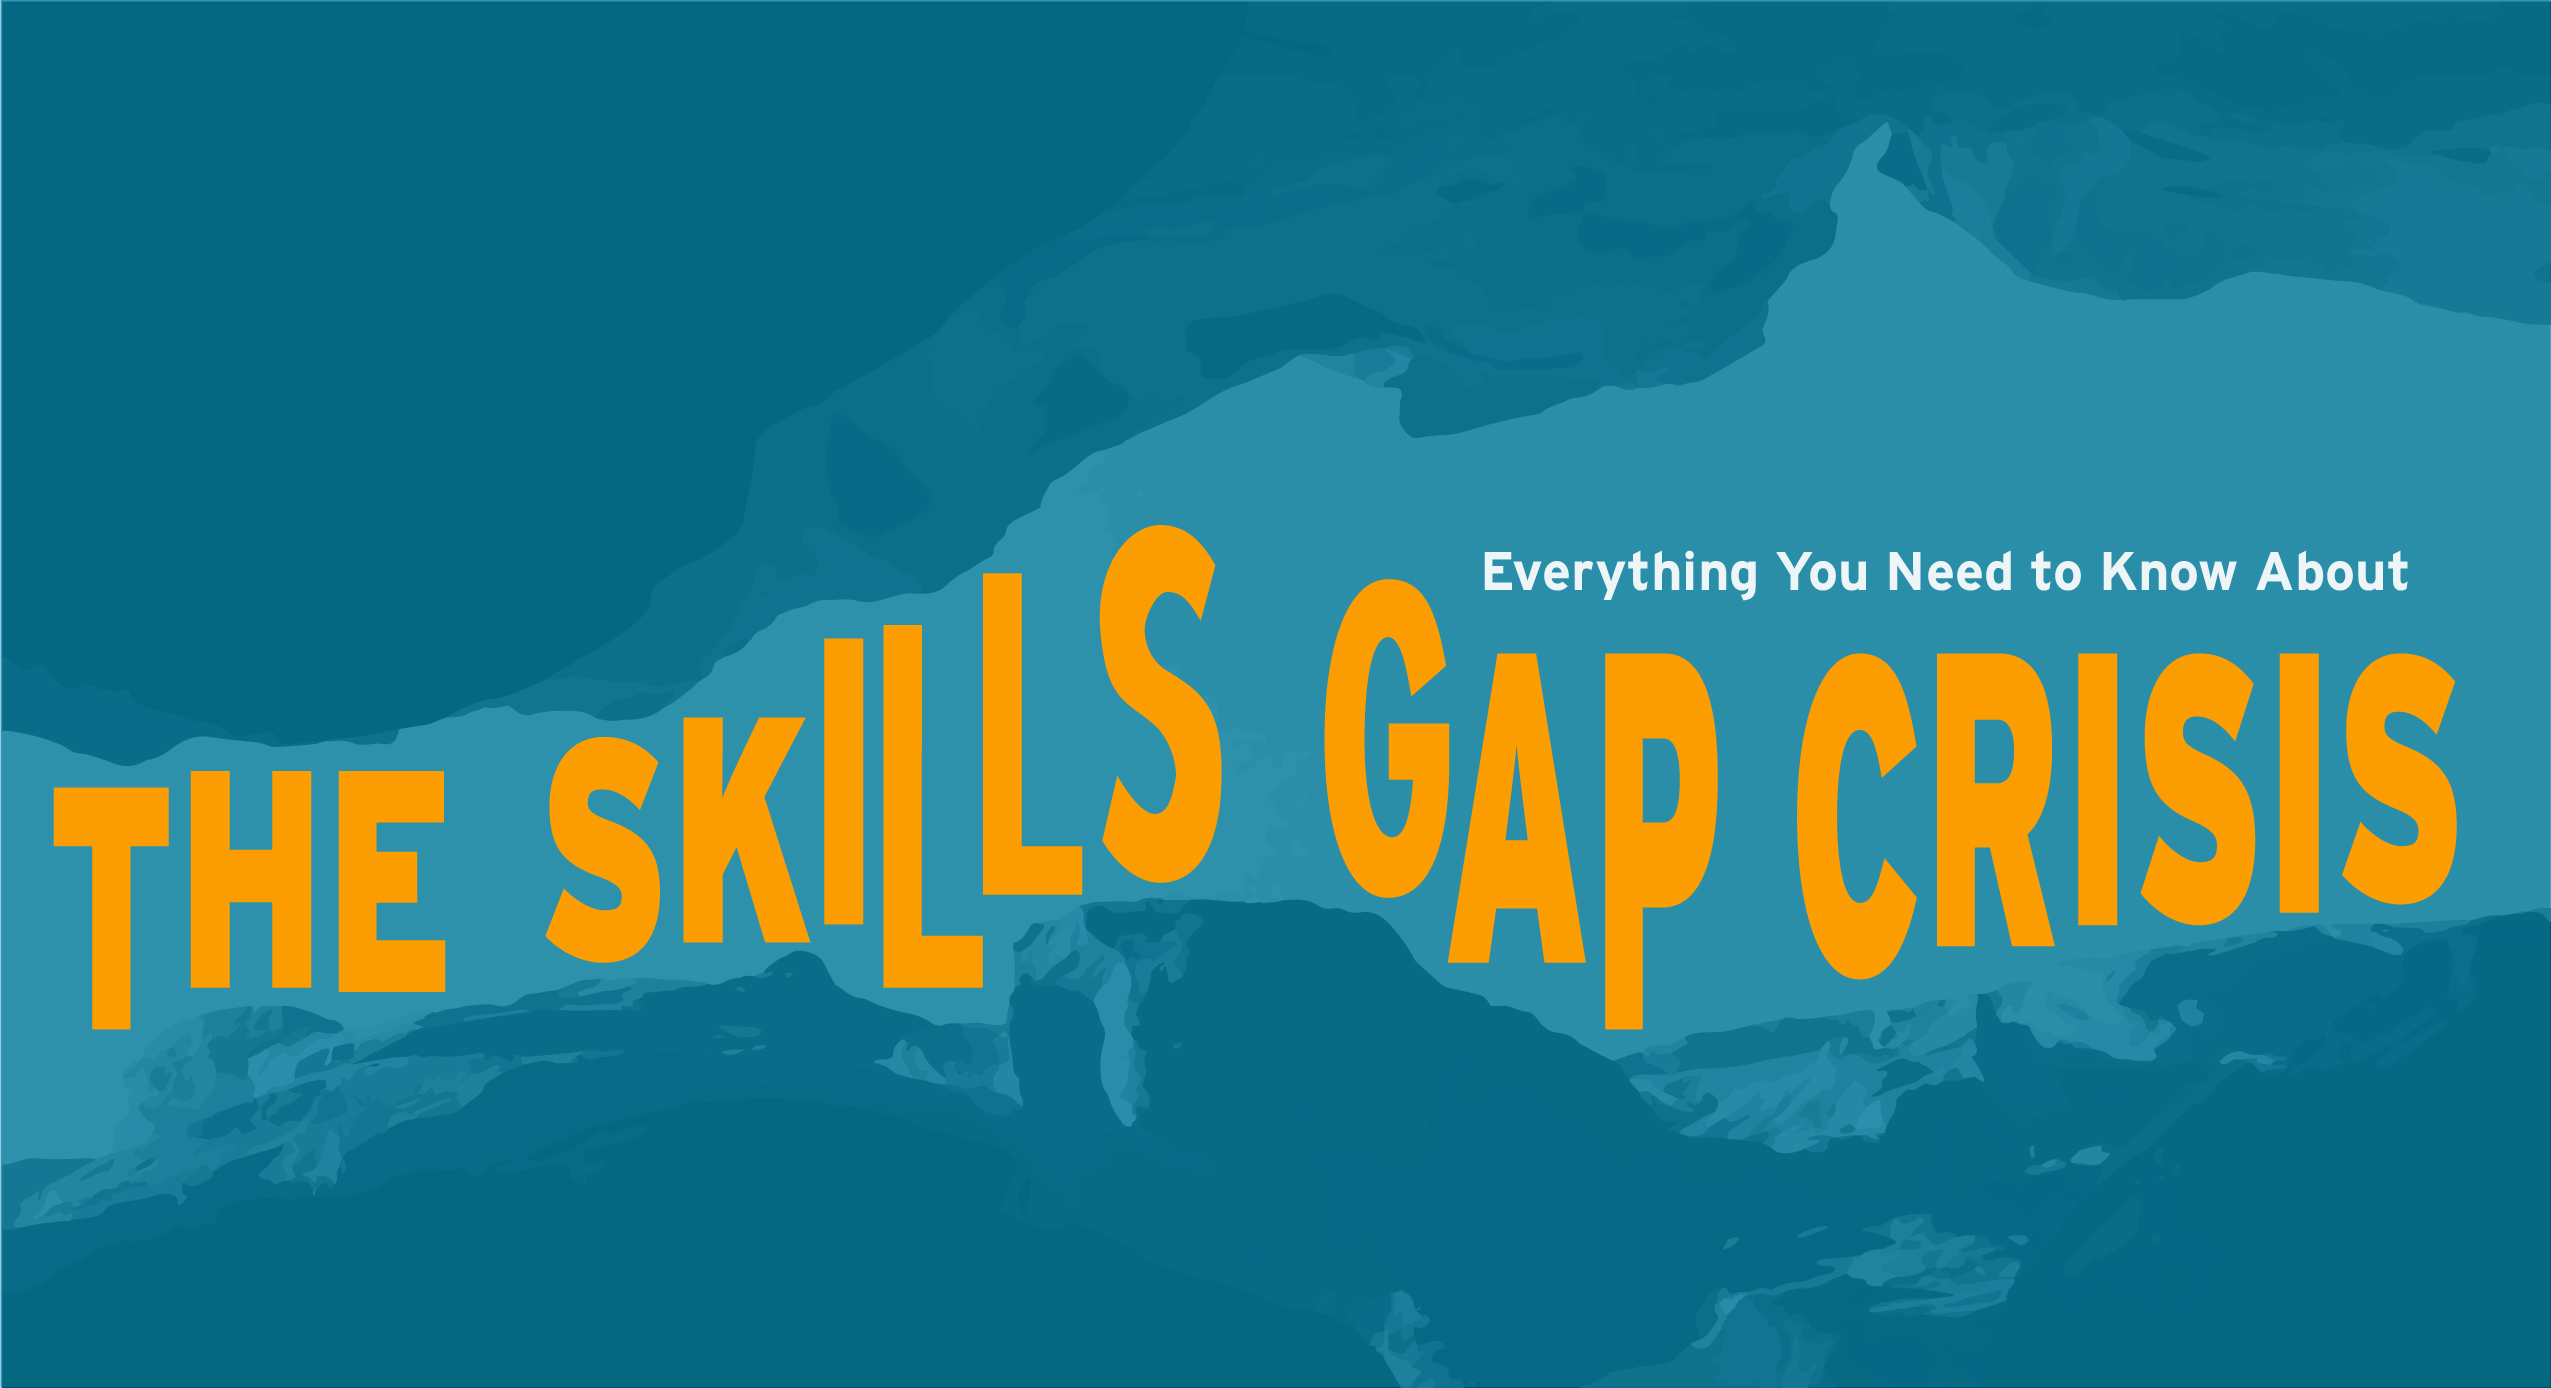 Everything You Need to Know About the Skills Gap Crisis